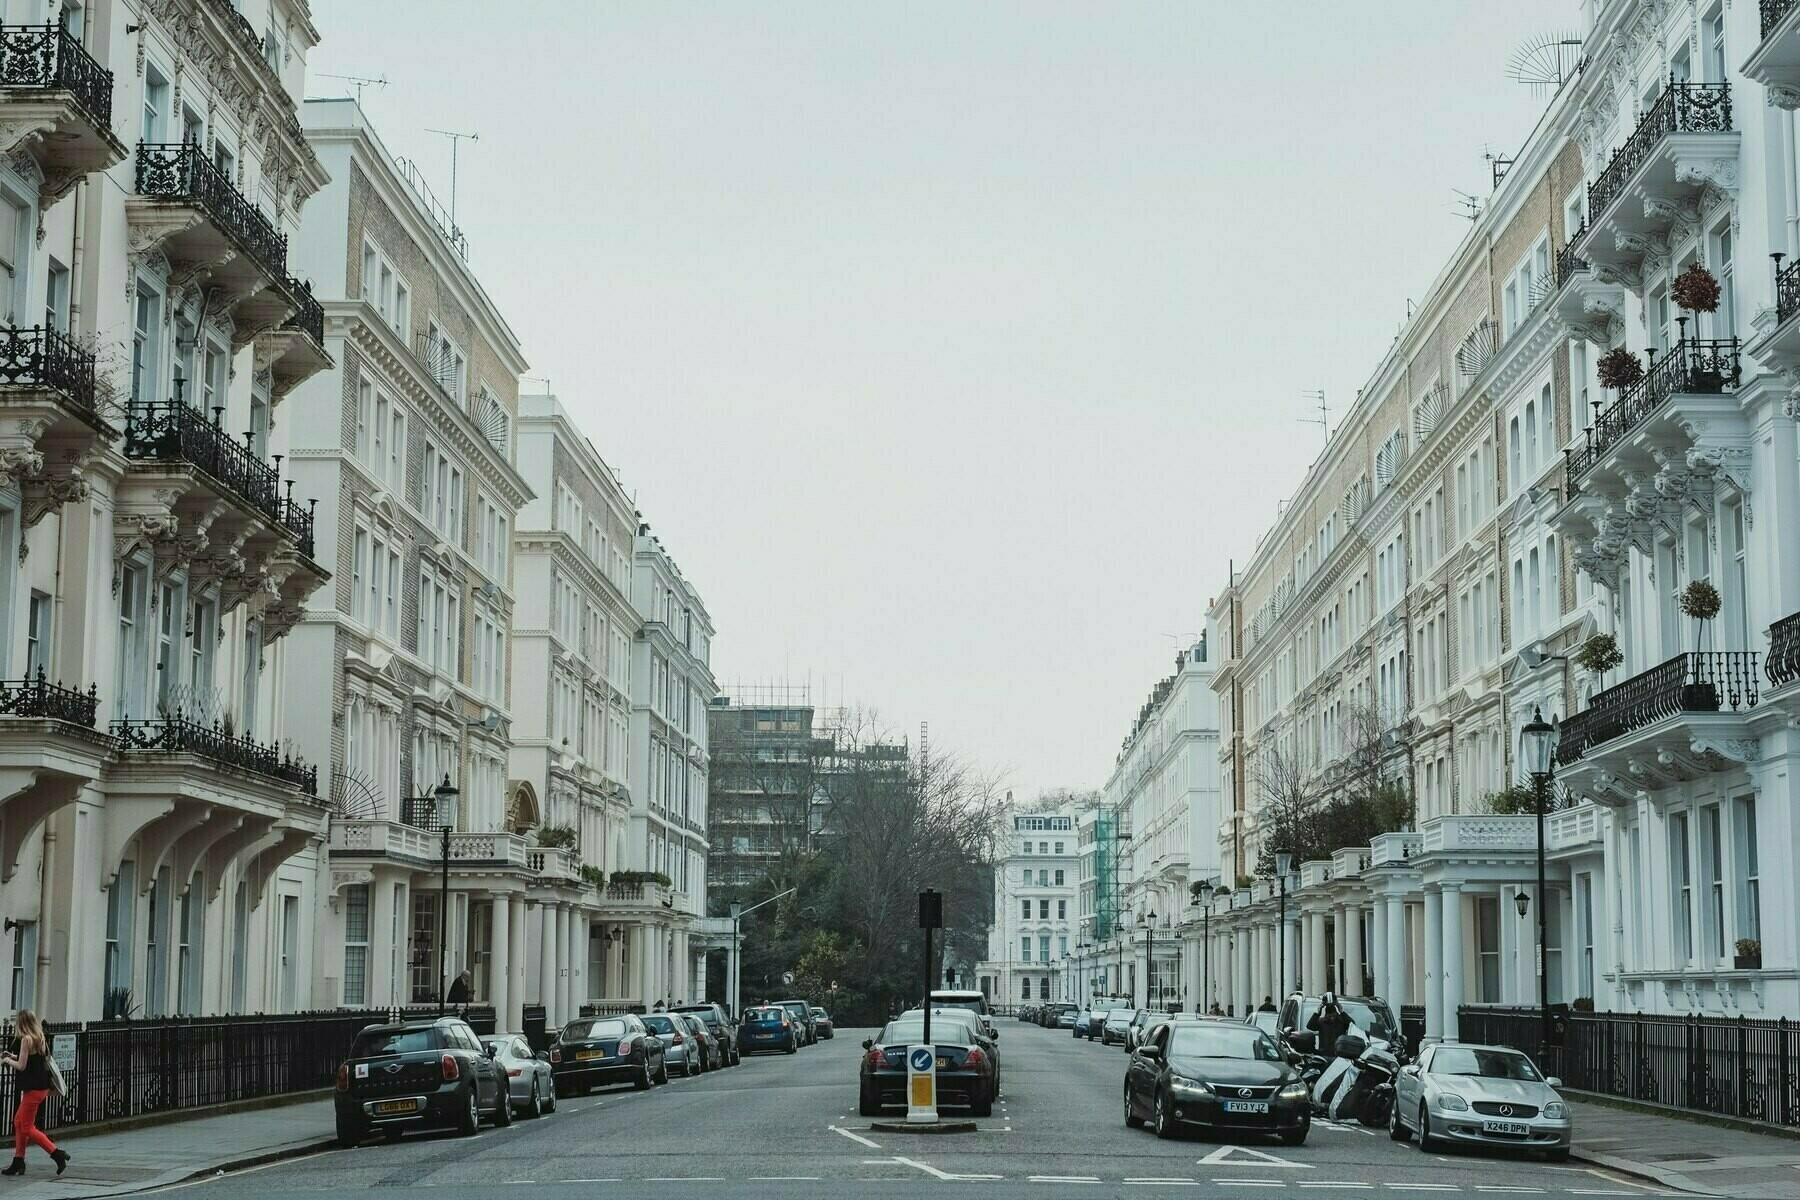 bisected street in London, England